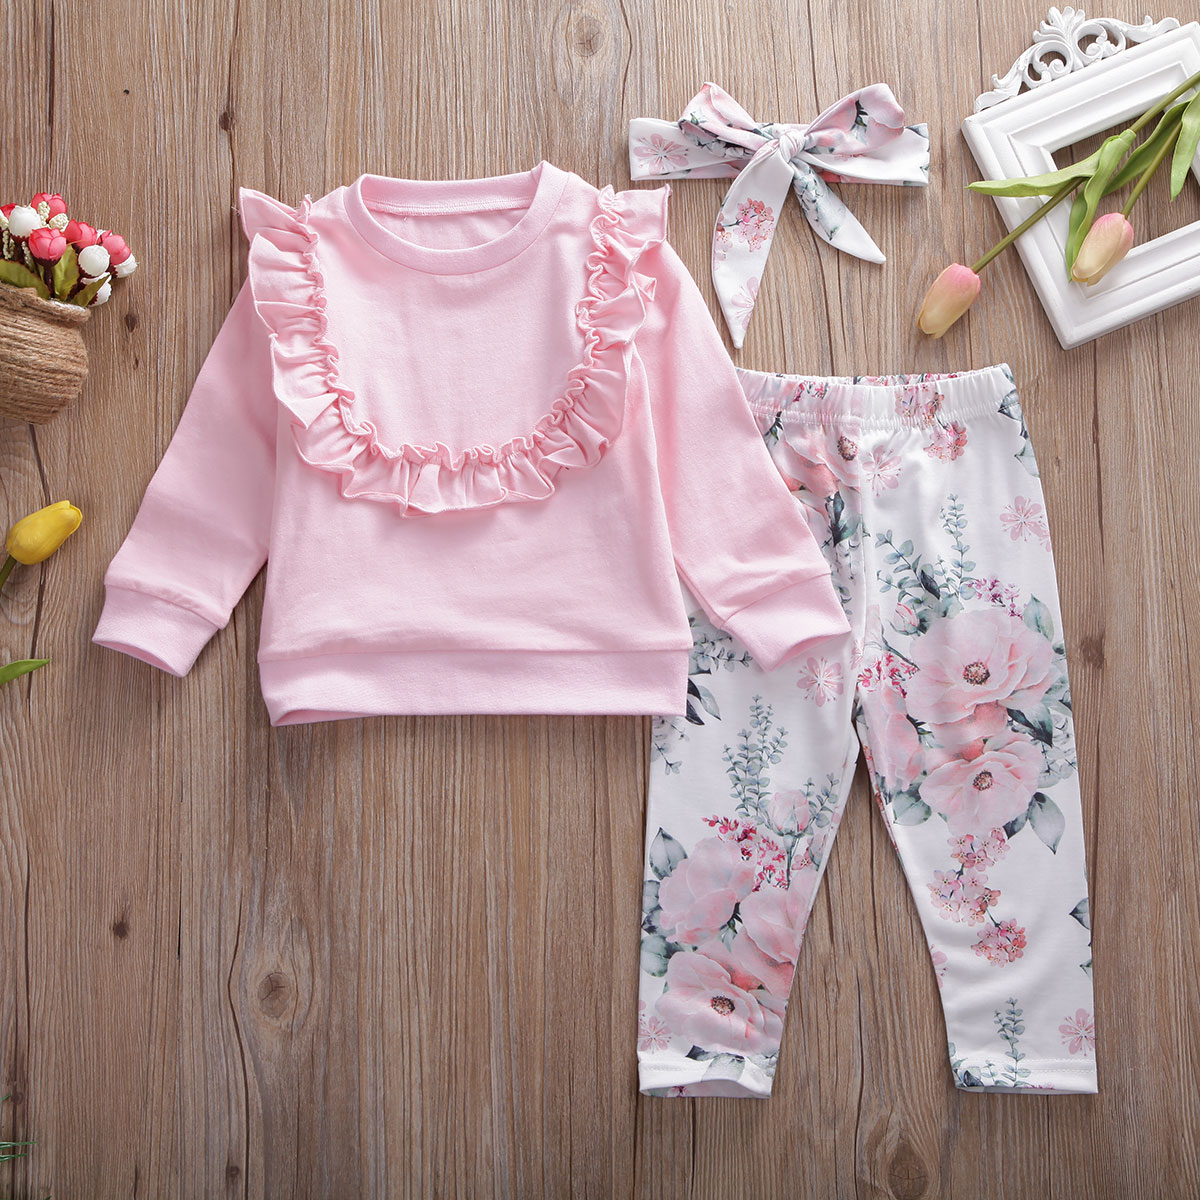 Pudcoco Newborn Baby Girl Clothes Solid Color Flower Ruffle Long Sleeve Tops Flower Print Long Pants Headband 3Pcs Outfits Set